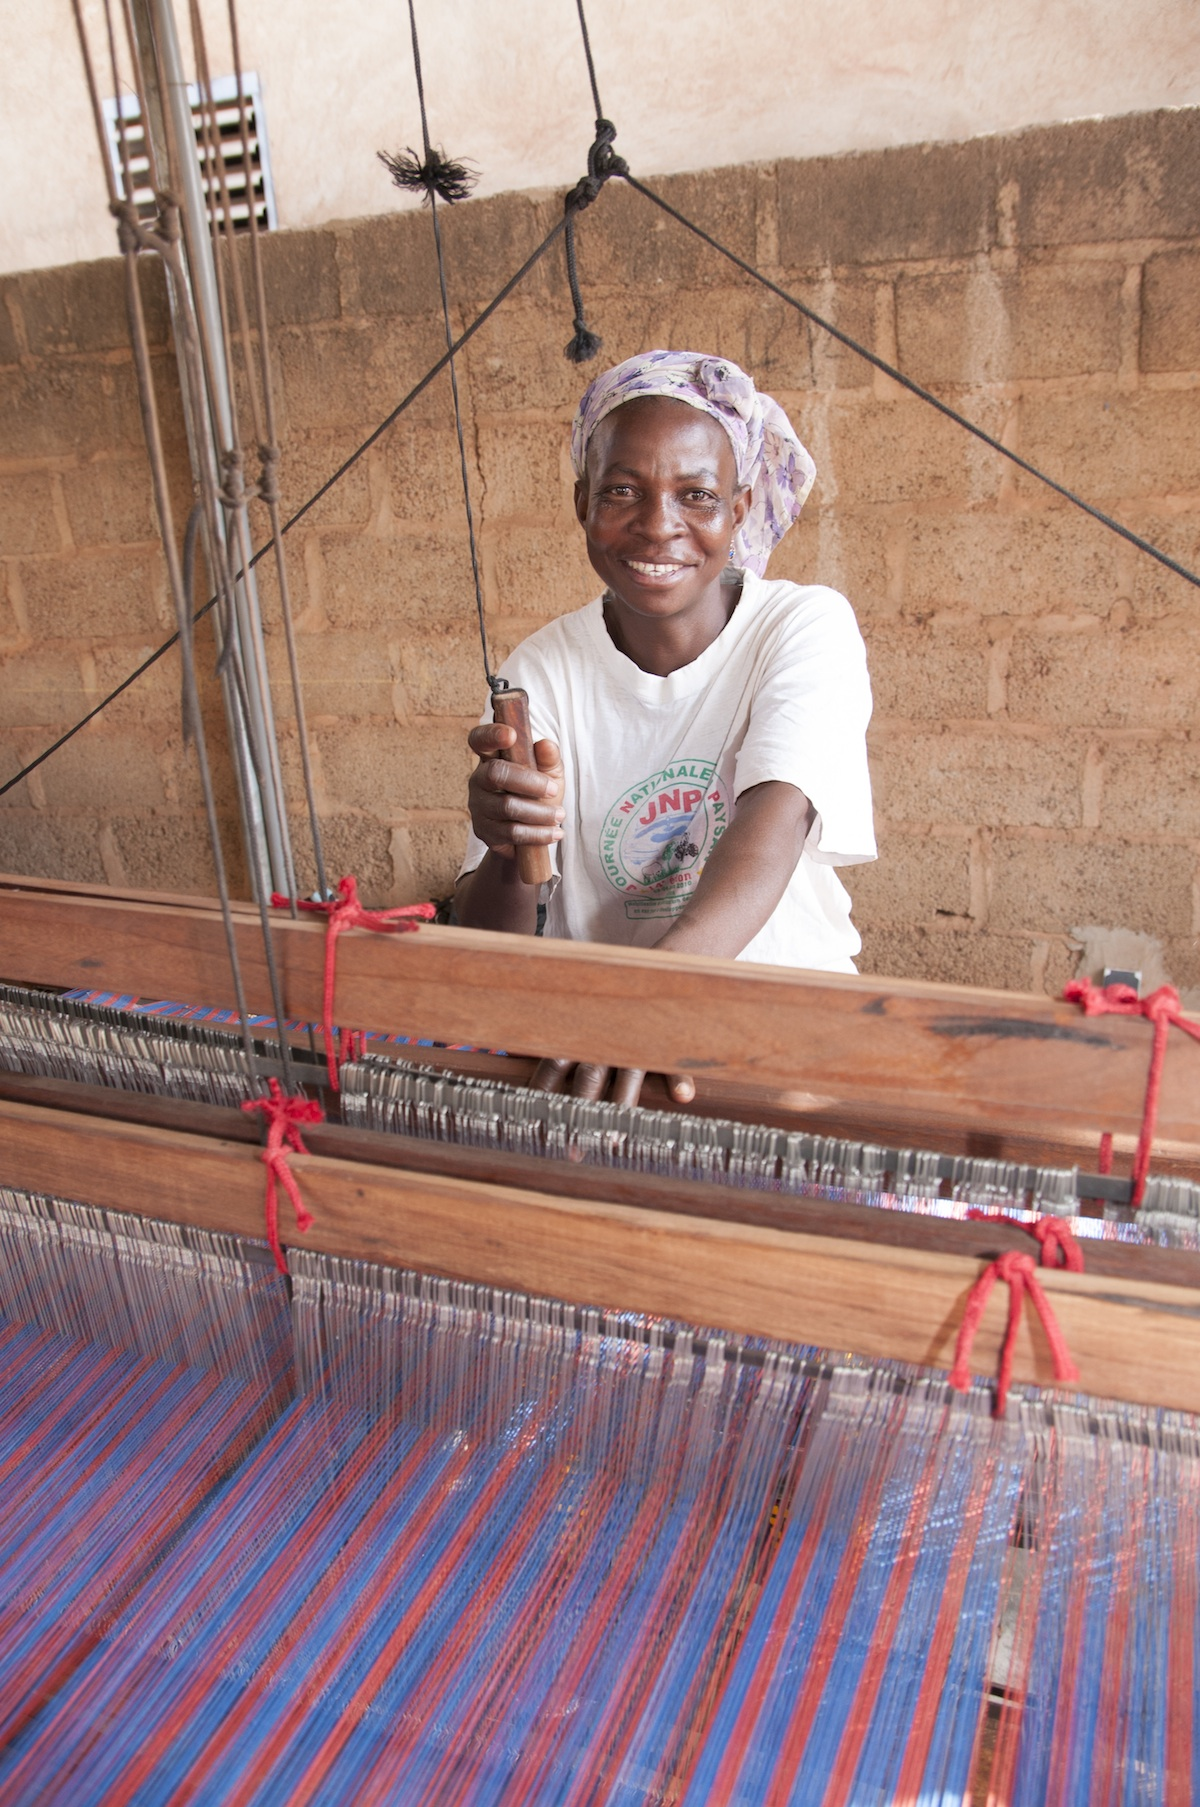 Embroidering African Women S Artisanal Skills Onto